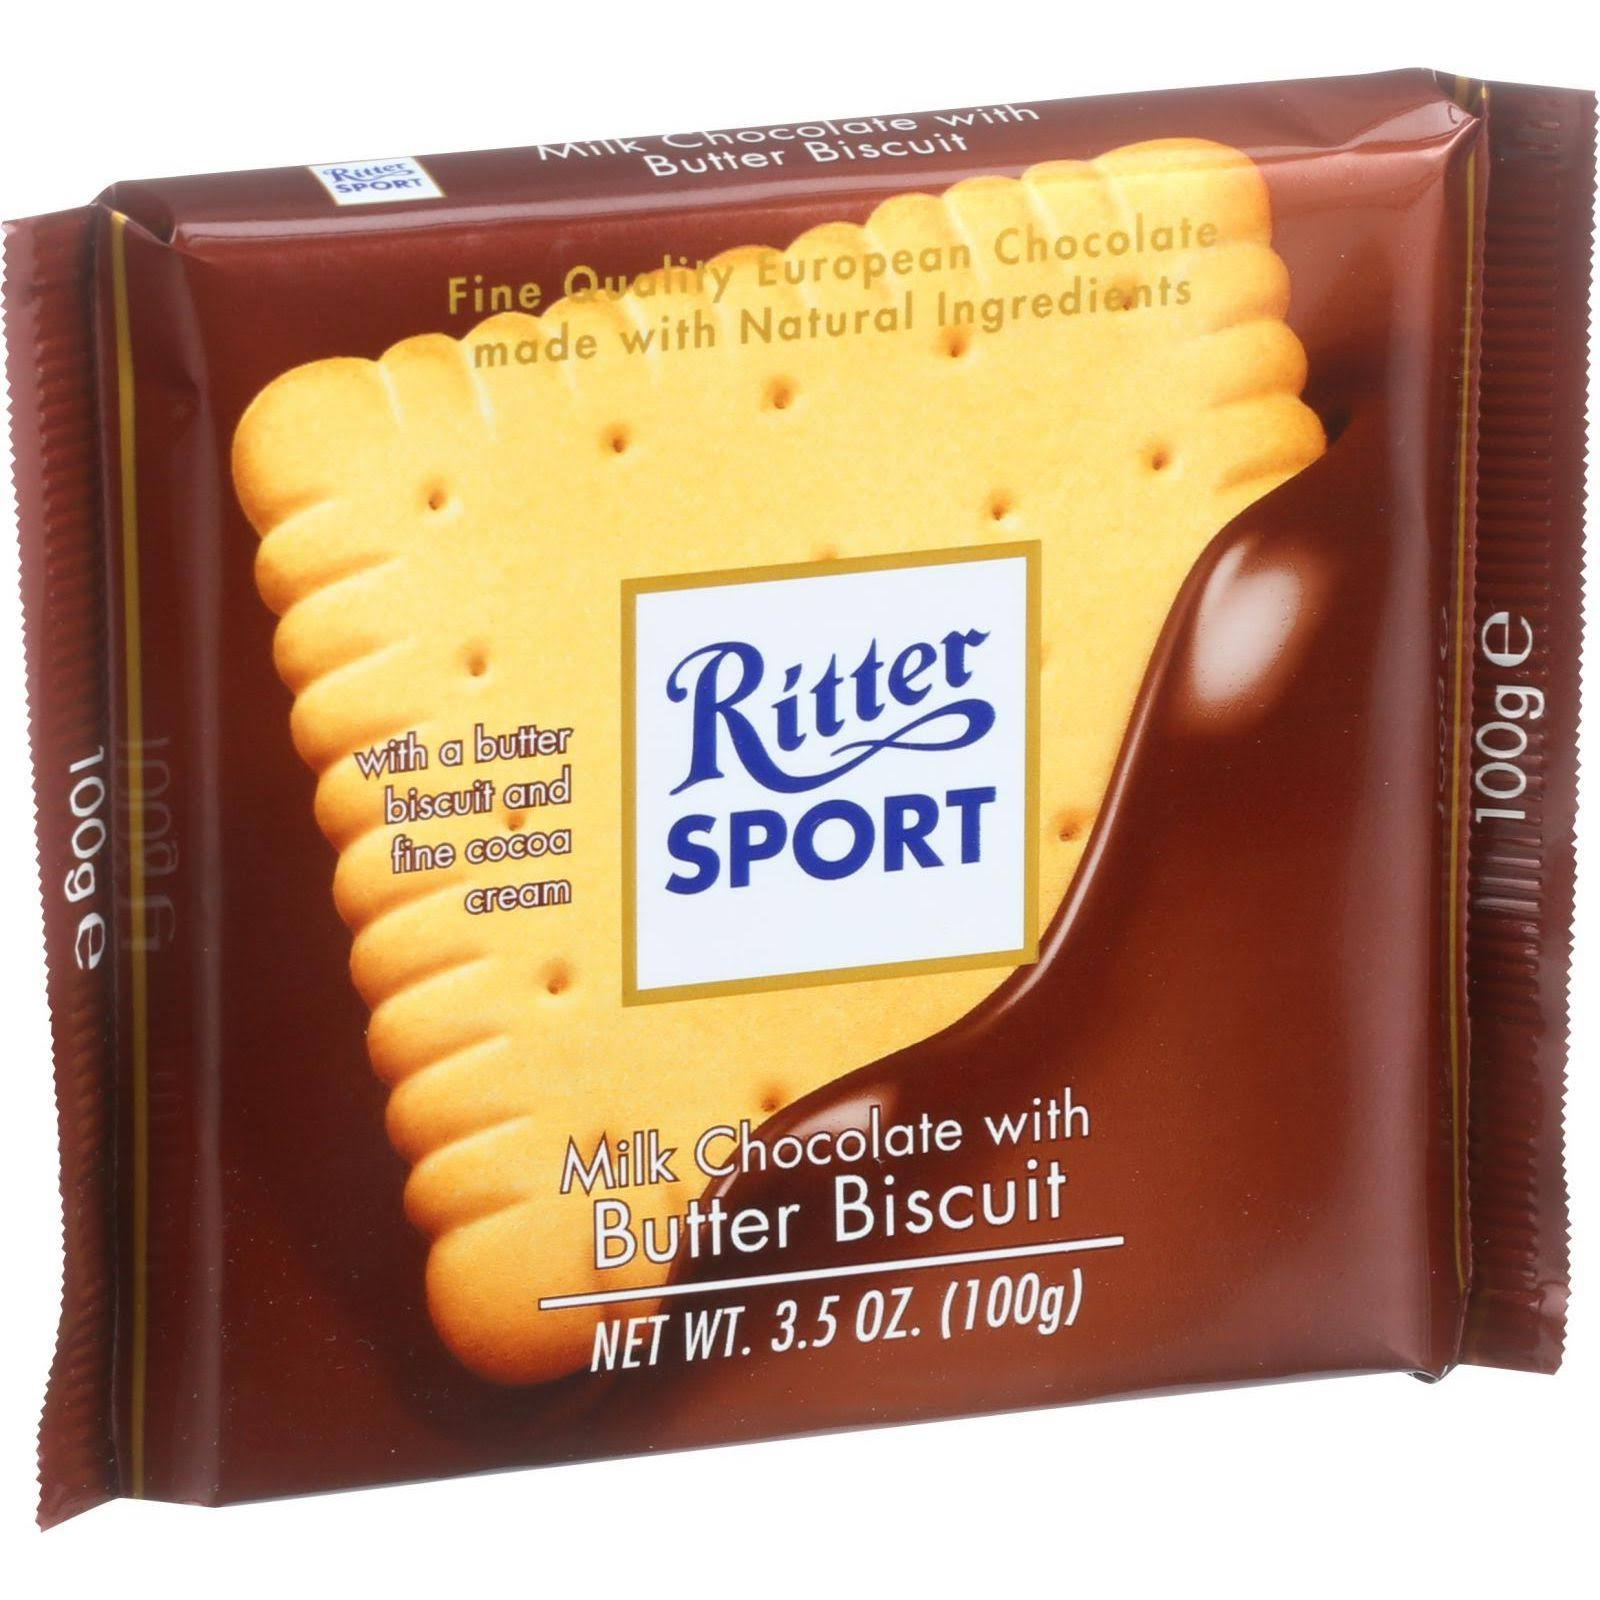 Ritter Sport - Milk Chocolate With Butter Biscuit, 100g